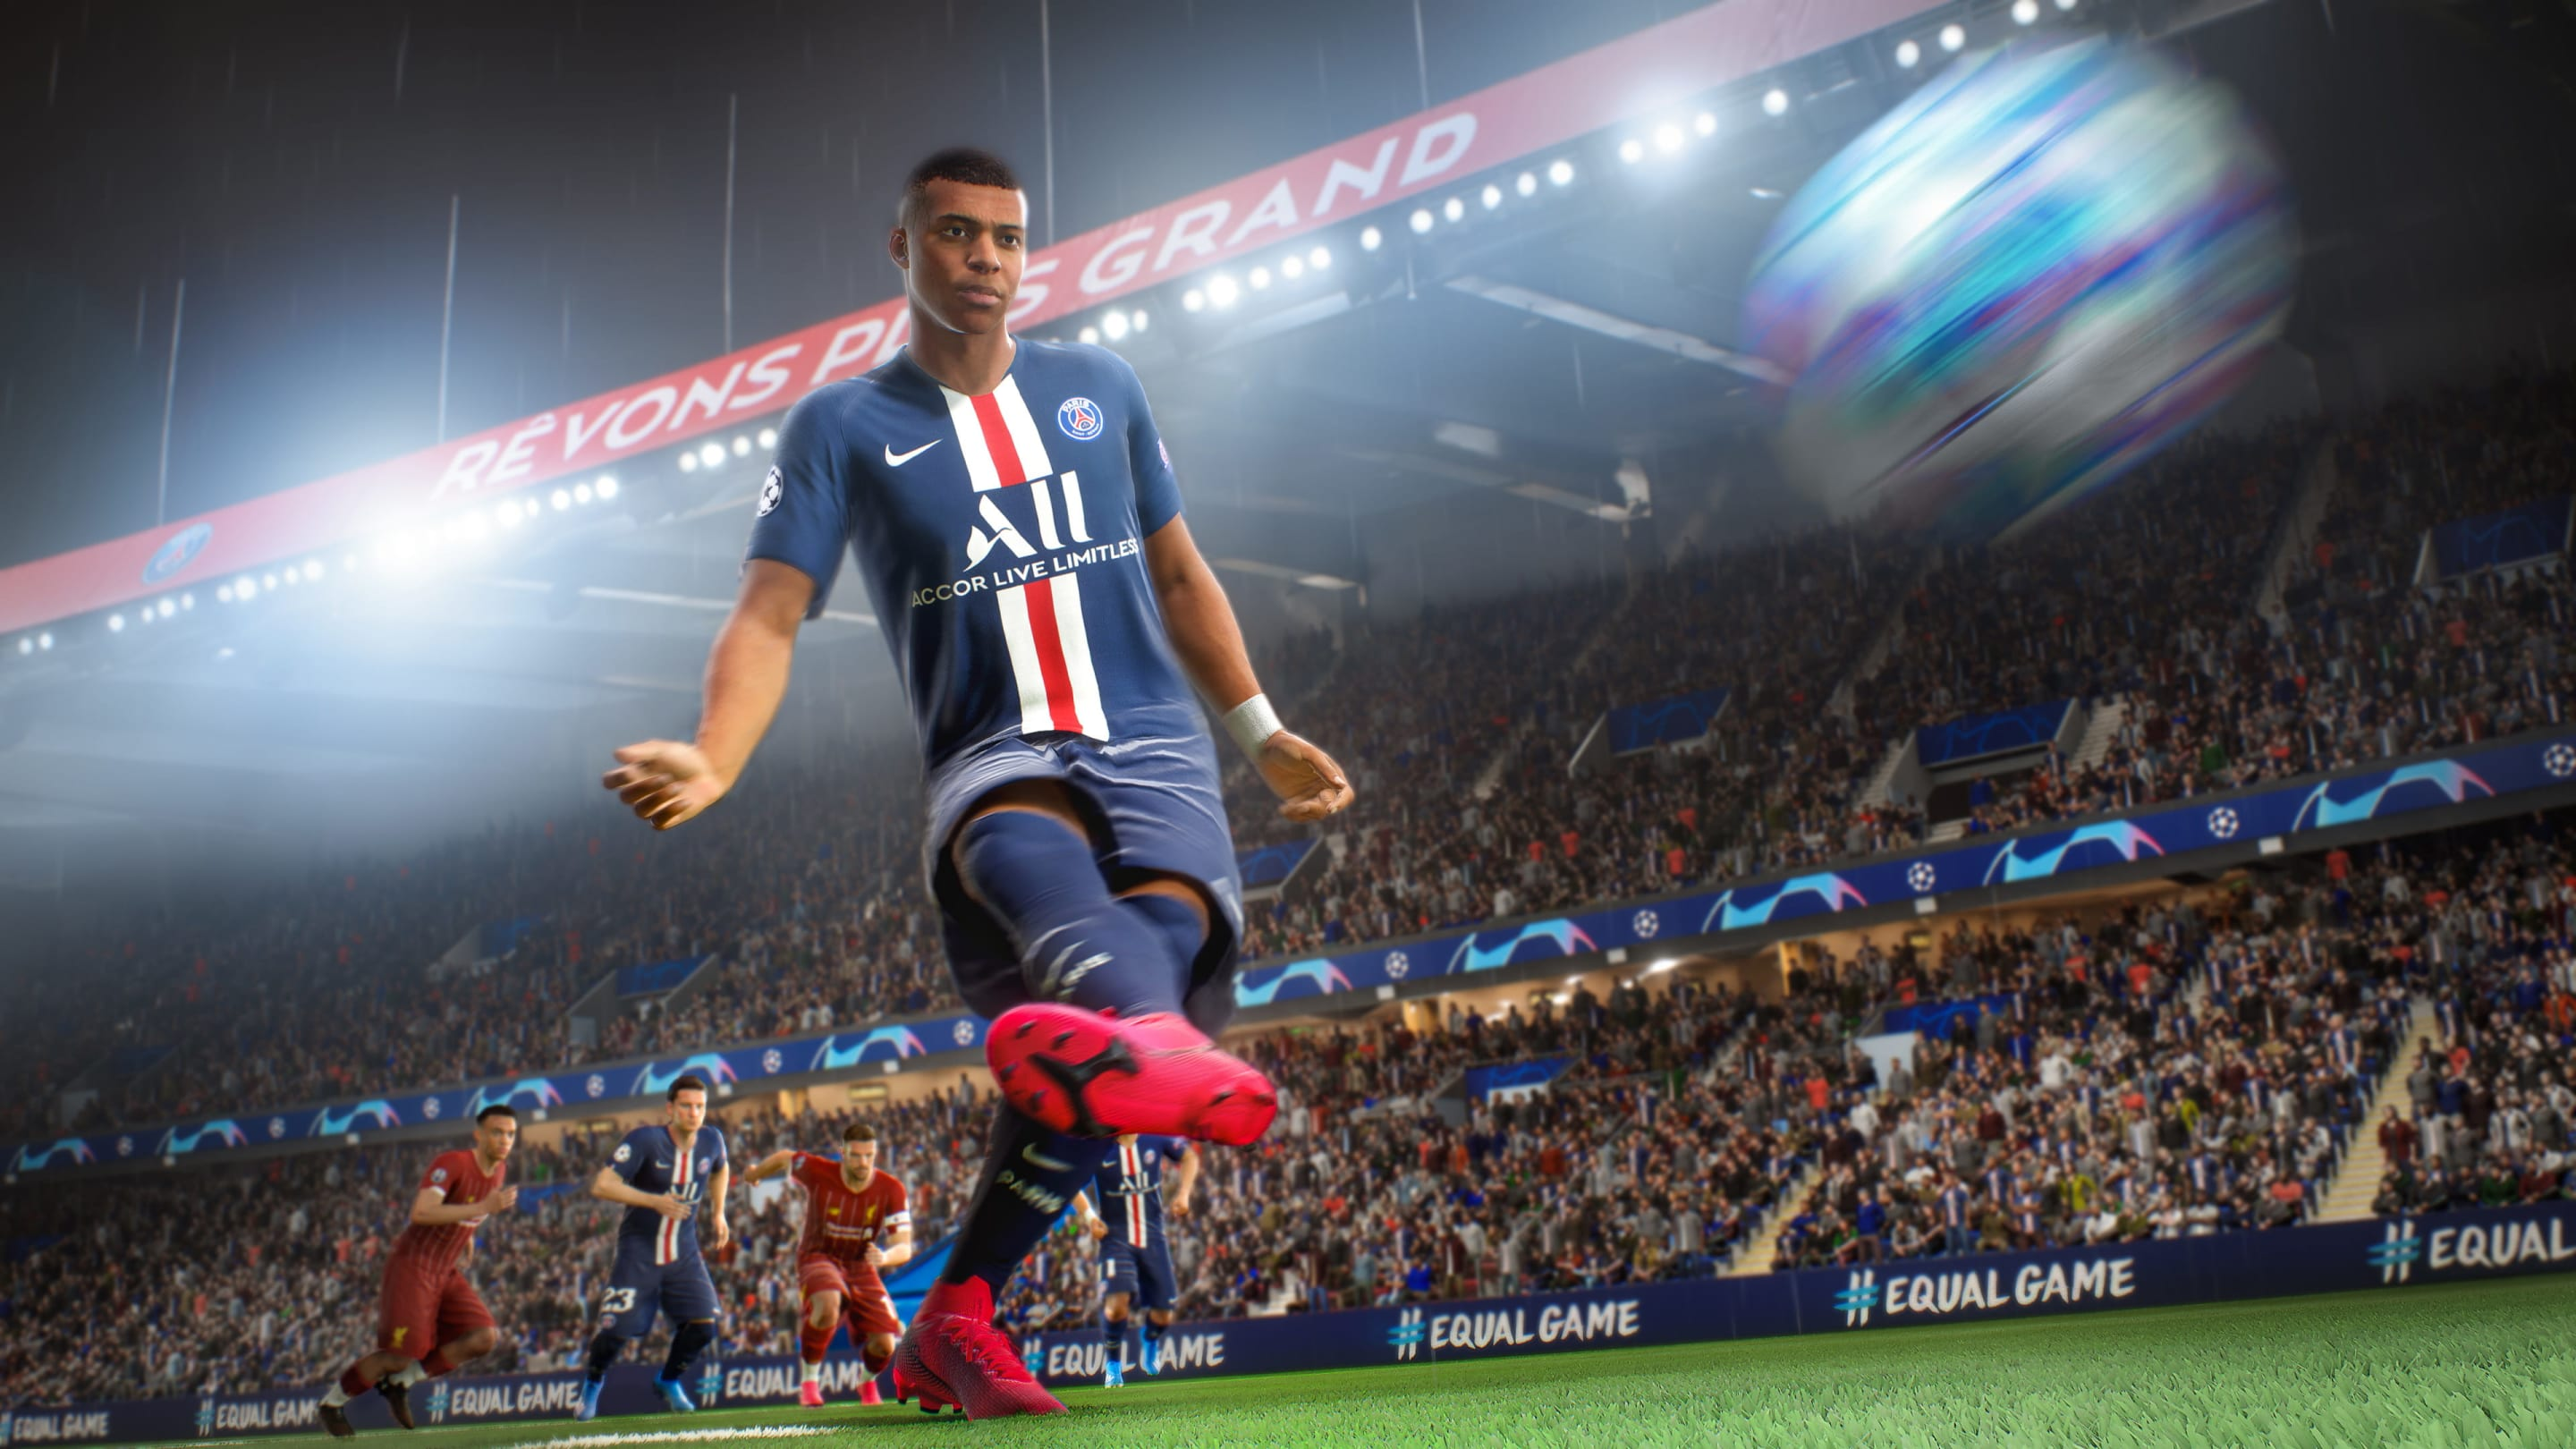 FIFA 22 Release Date Updates: When Will the Game Come Out?